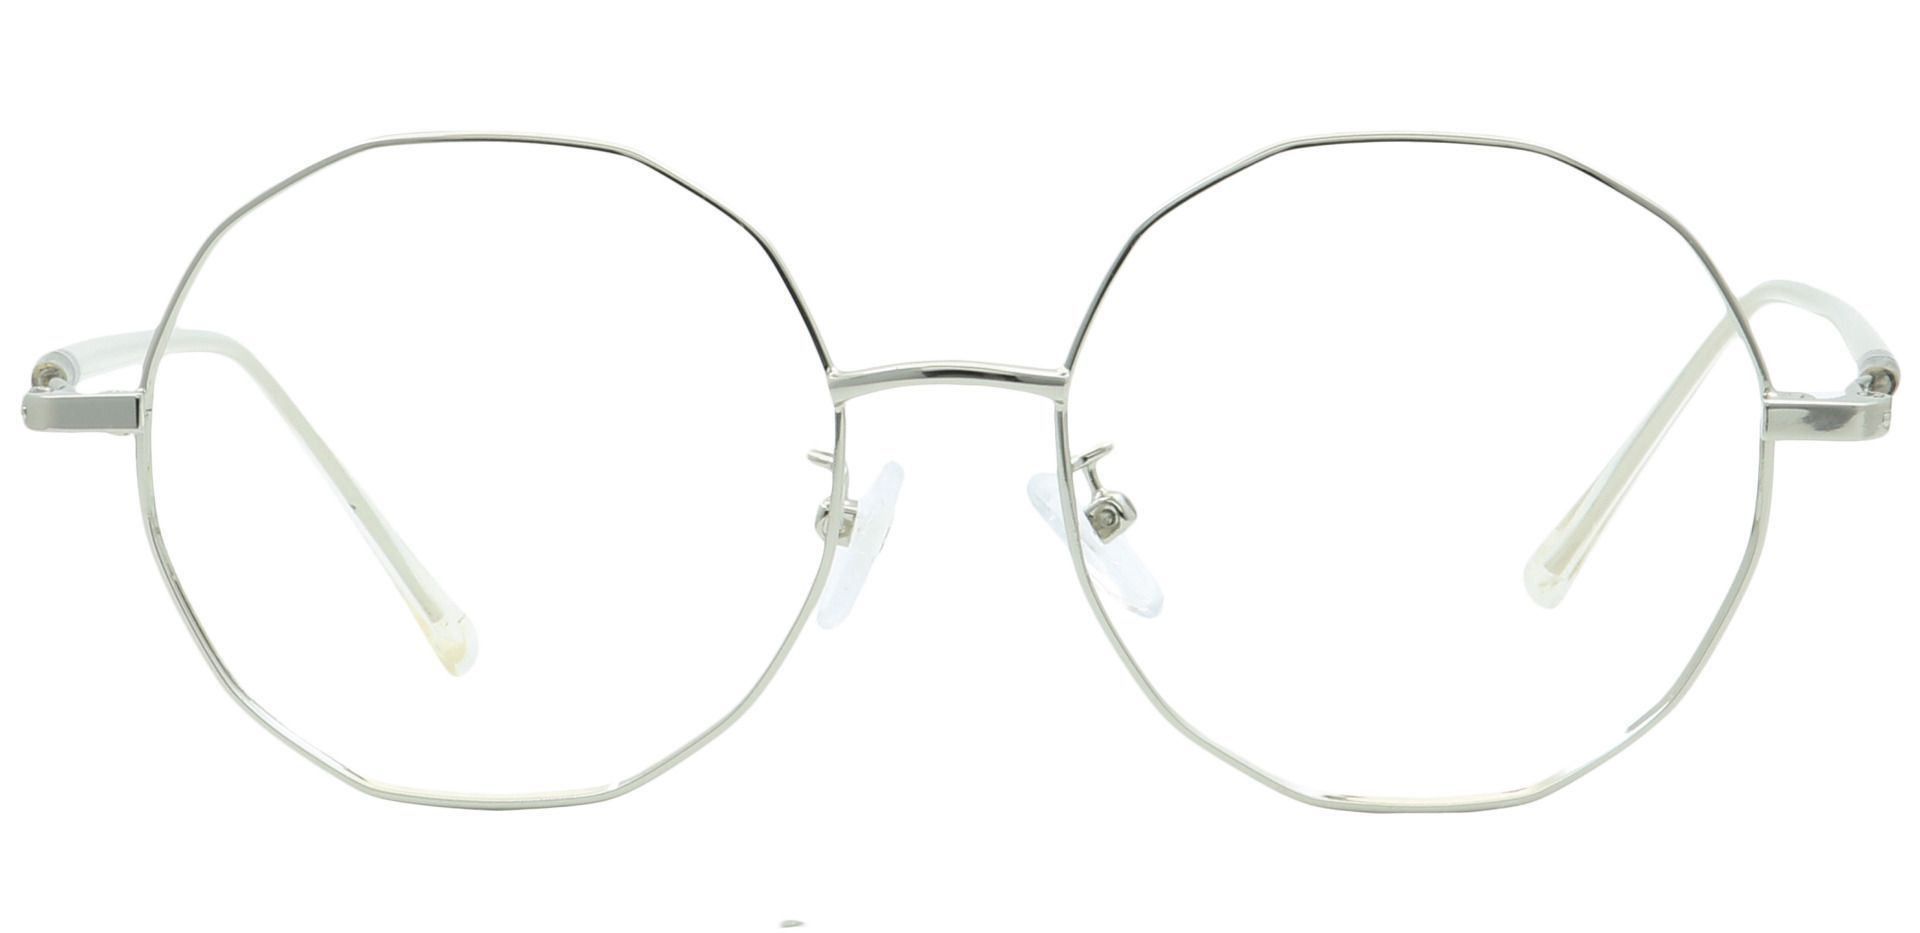 Niles Round Blue Light Blocking Glasses - Clear